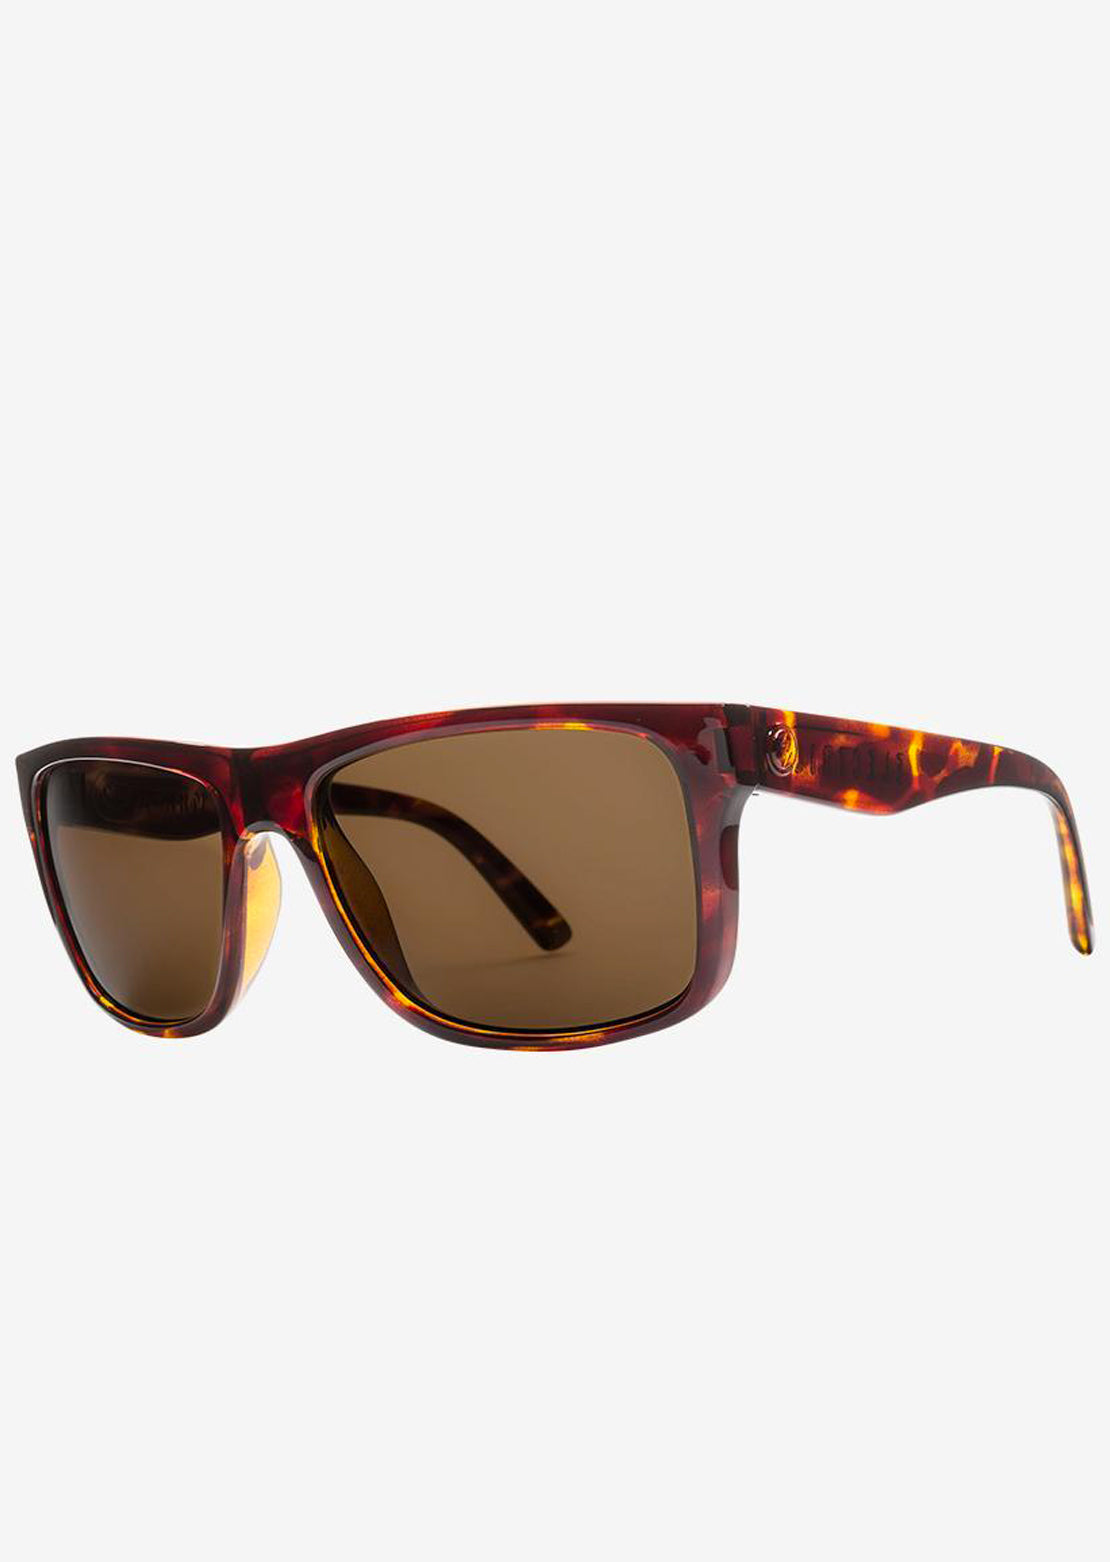 Electric Men's Swingarm Sunglasses Matte Tortoise/Bronze